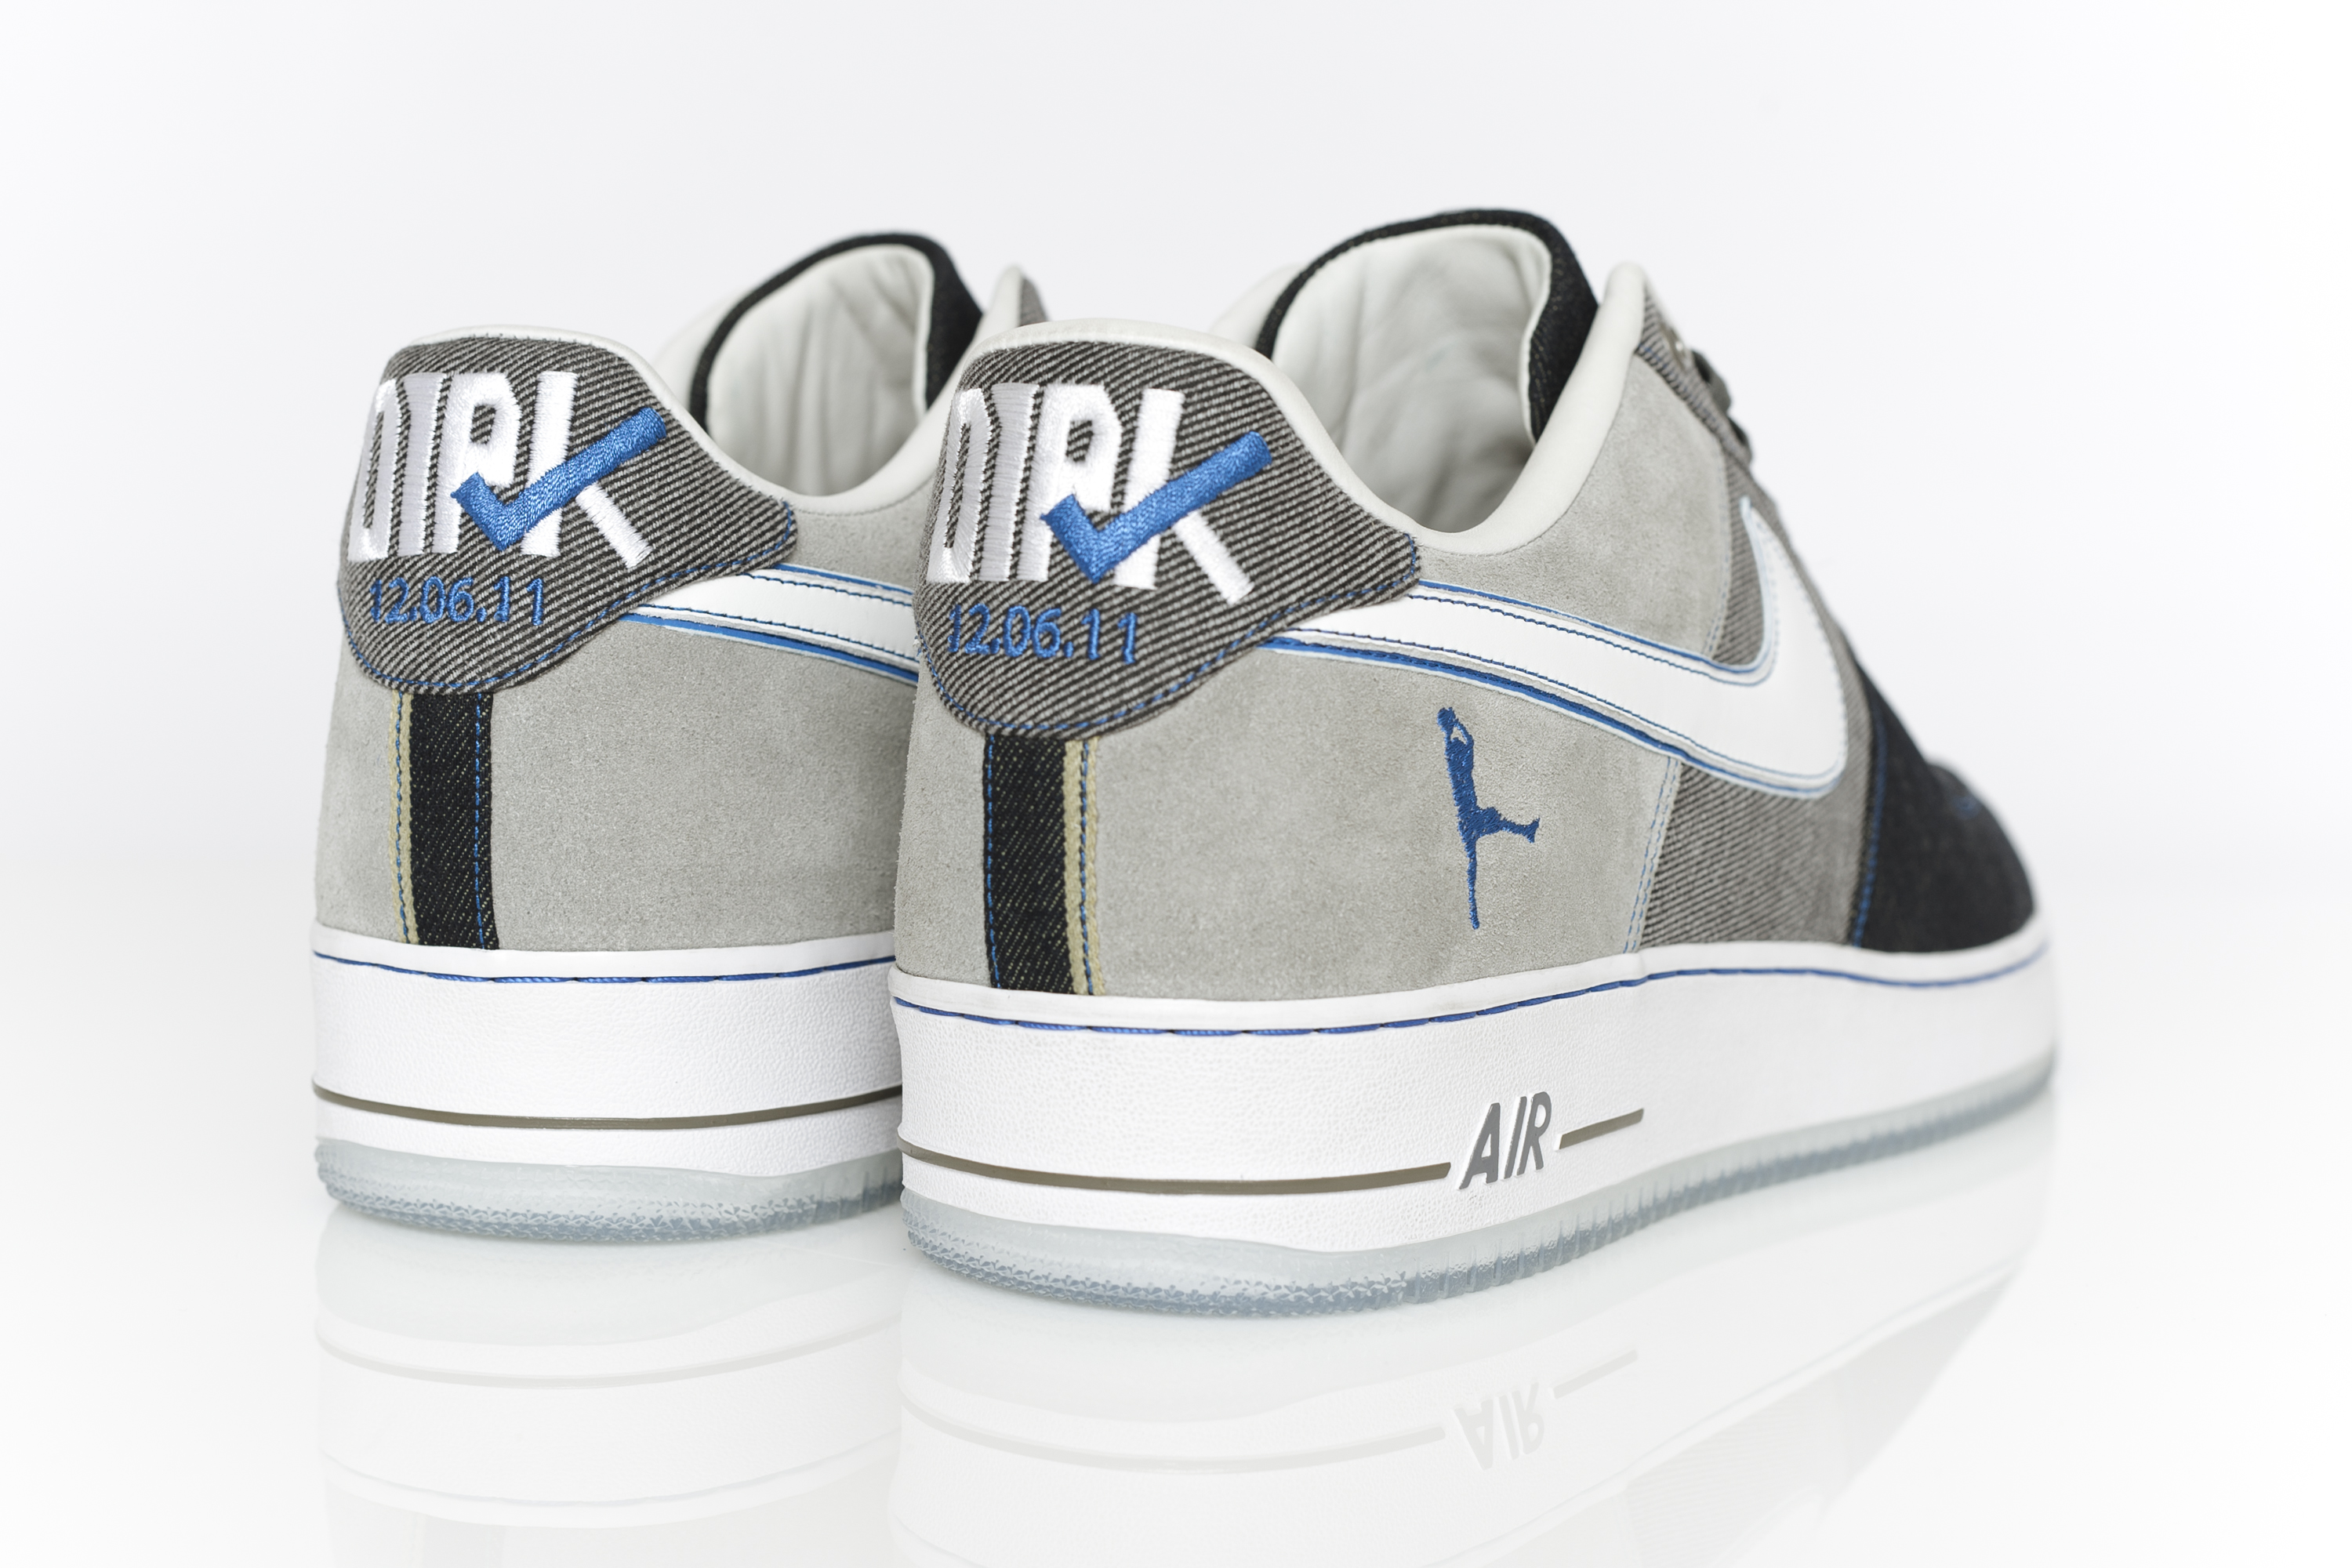 Nike Designs Bespoke Air Force 1 For Dirk Nowitzki Nike News